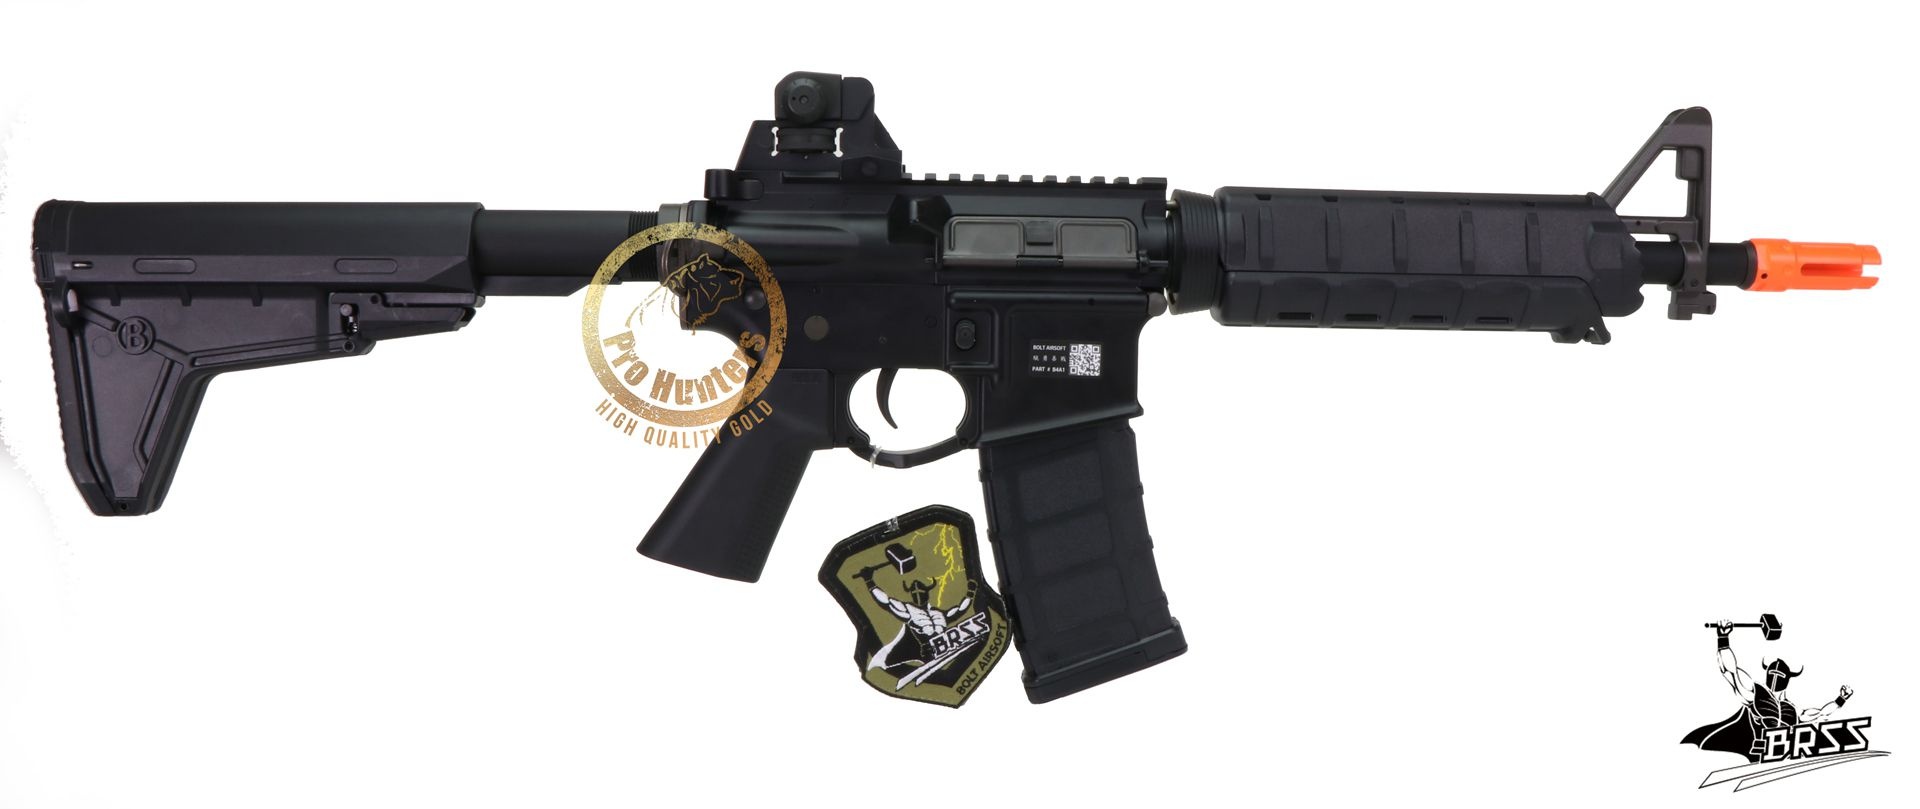 Rifle Airsoft M4 BOLT B4A1 ELITE SD - Black Full Metal - Blowback & Recoil System - FRETE GRÁTIS